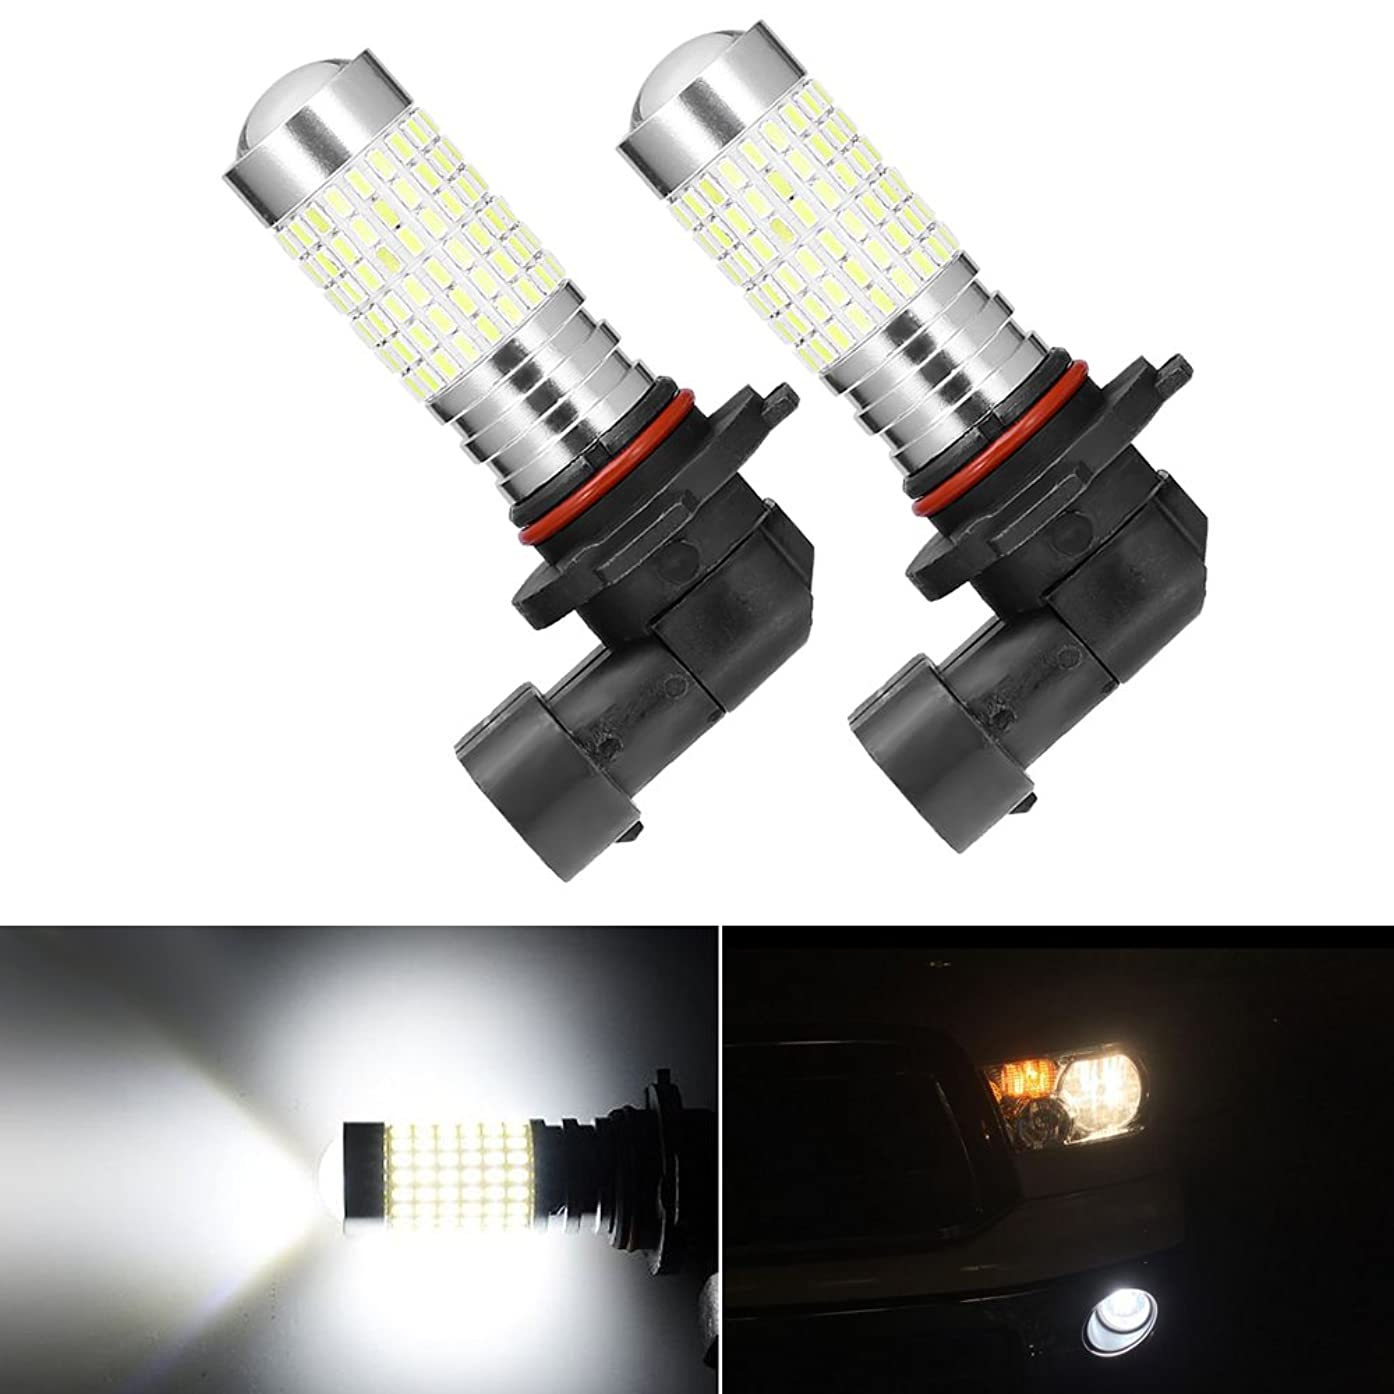 Anxingo 2PCS 1200 Lumens Extremely Bright 144-EX Chipsets H10 9140 9145 LED Bulbs with Projector for DRL or Fog Lights, Xenon White